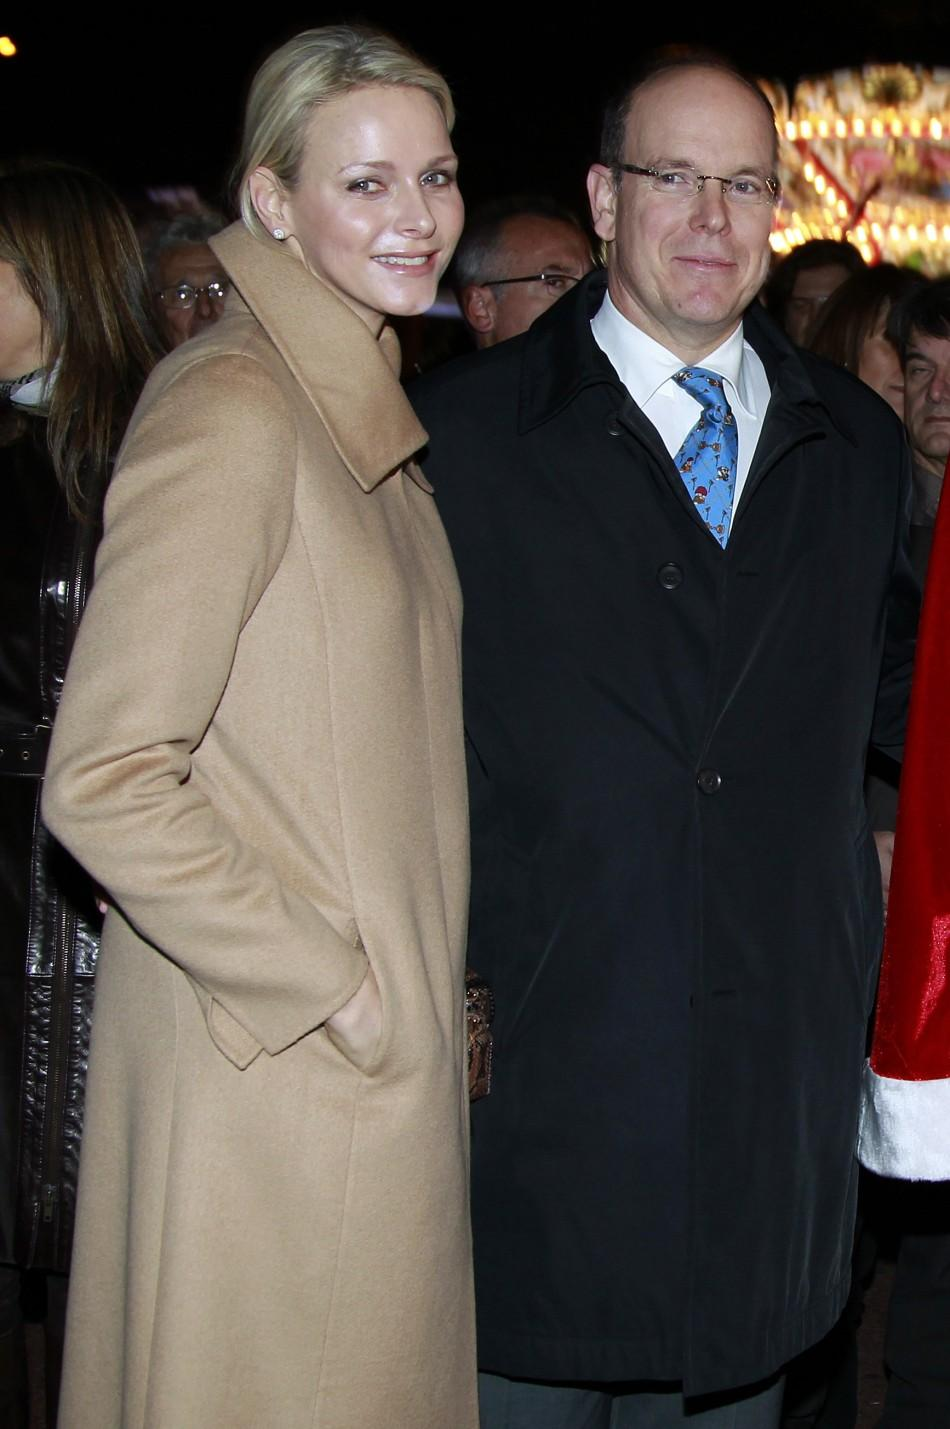 Prince Albert and Charlene Whitstock